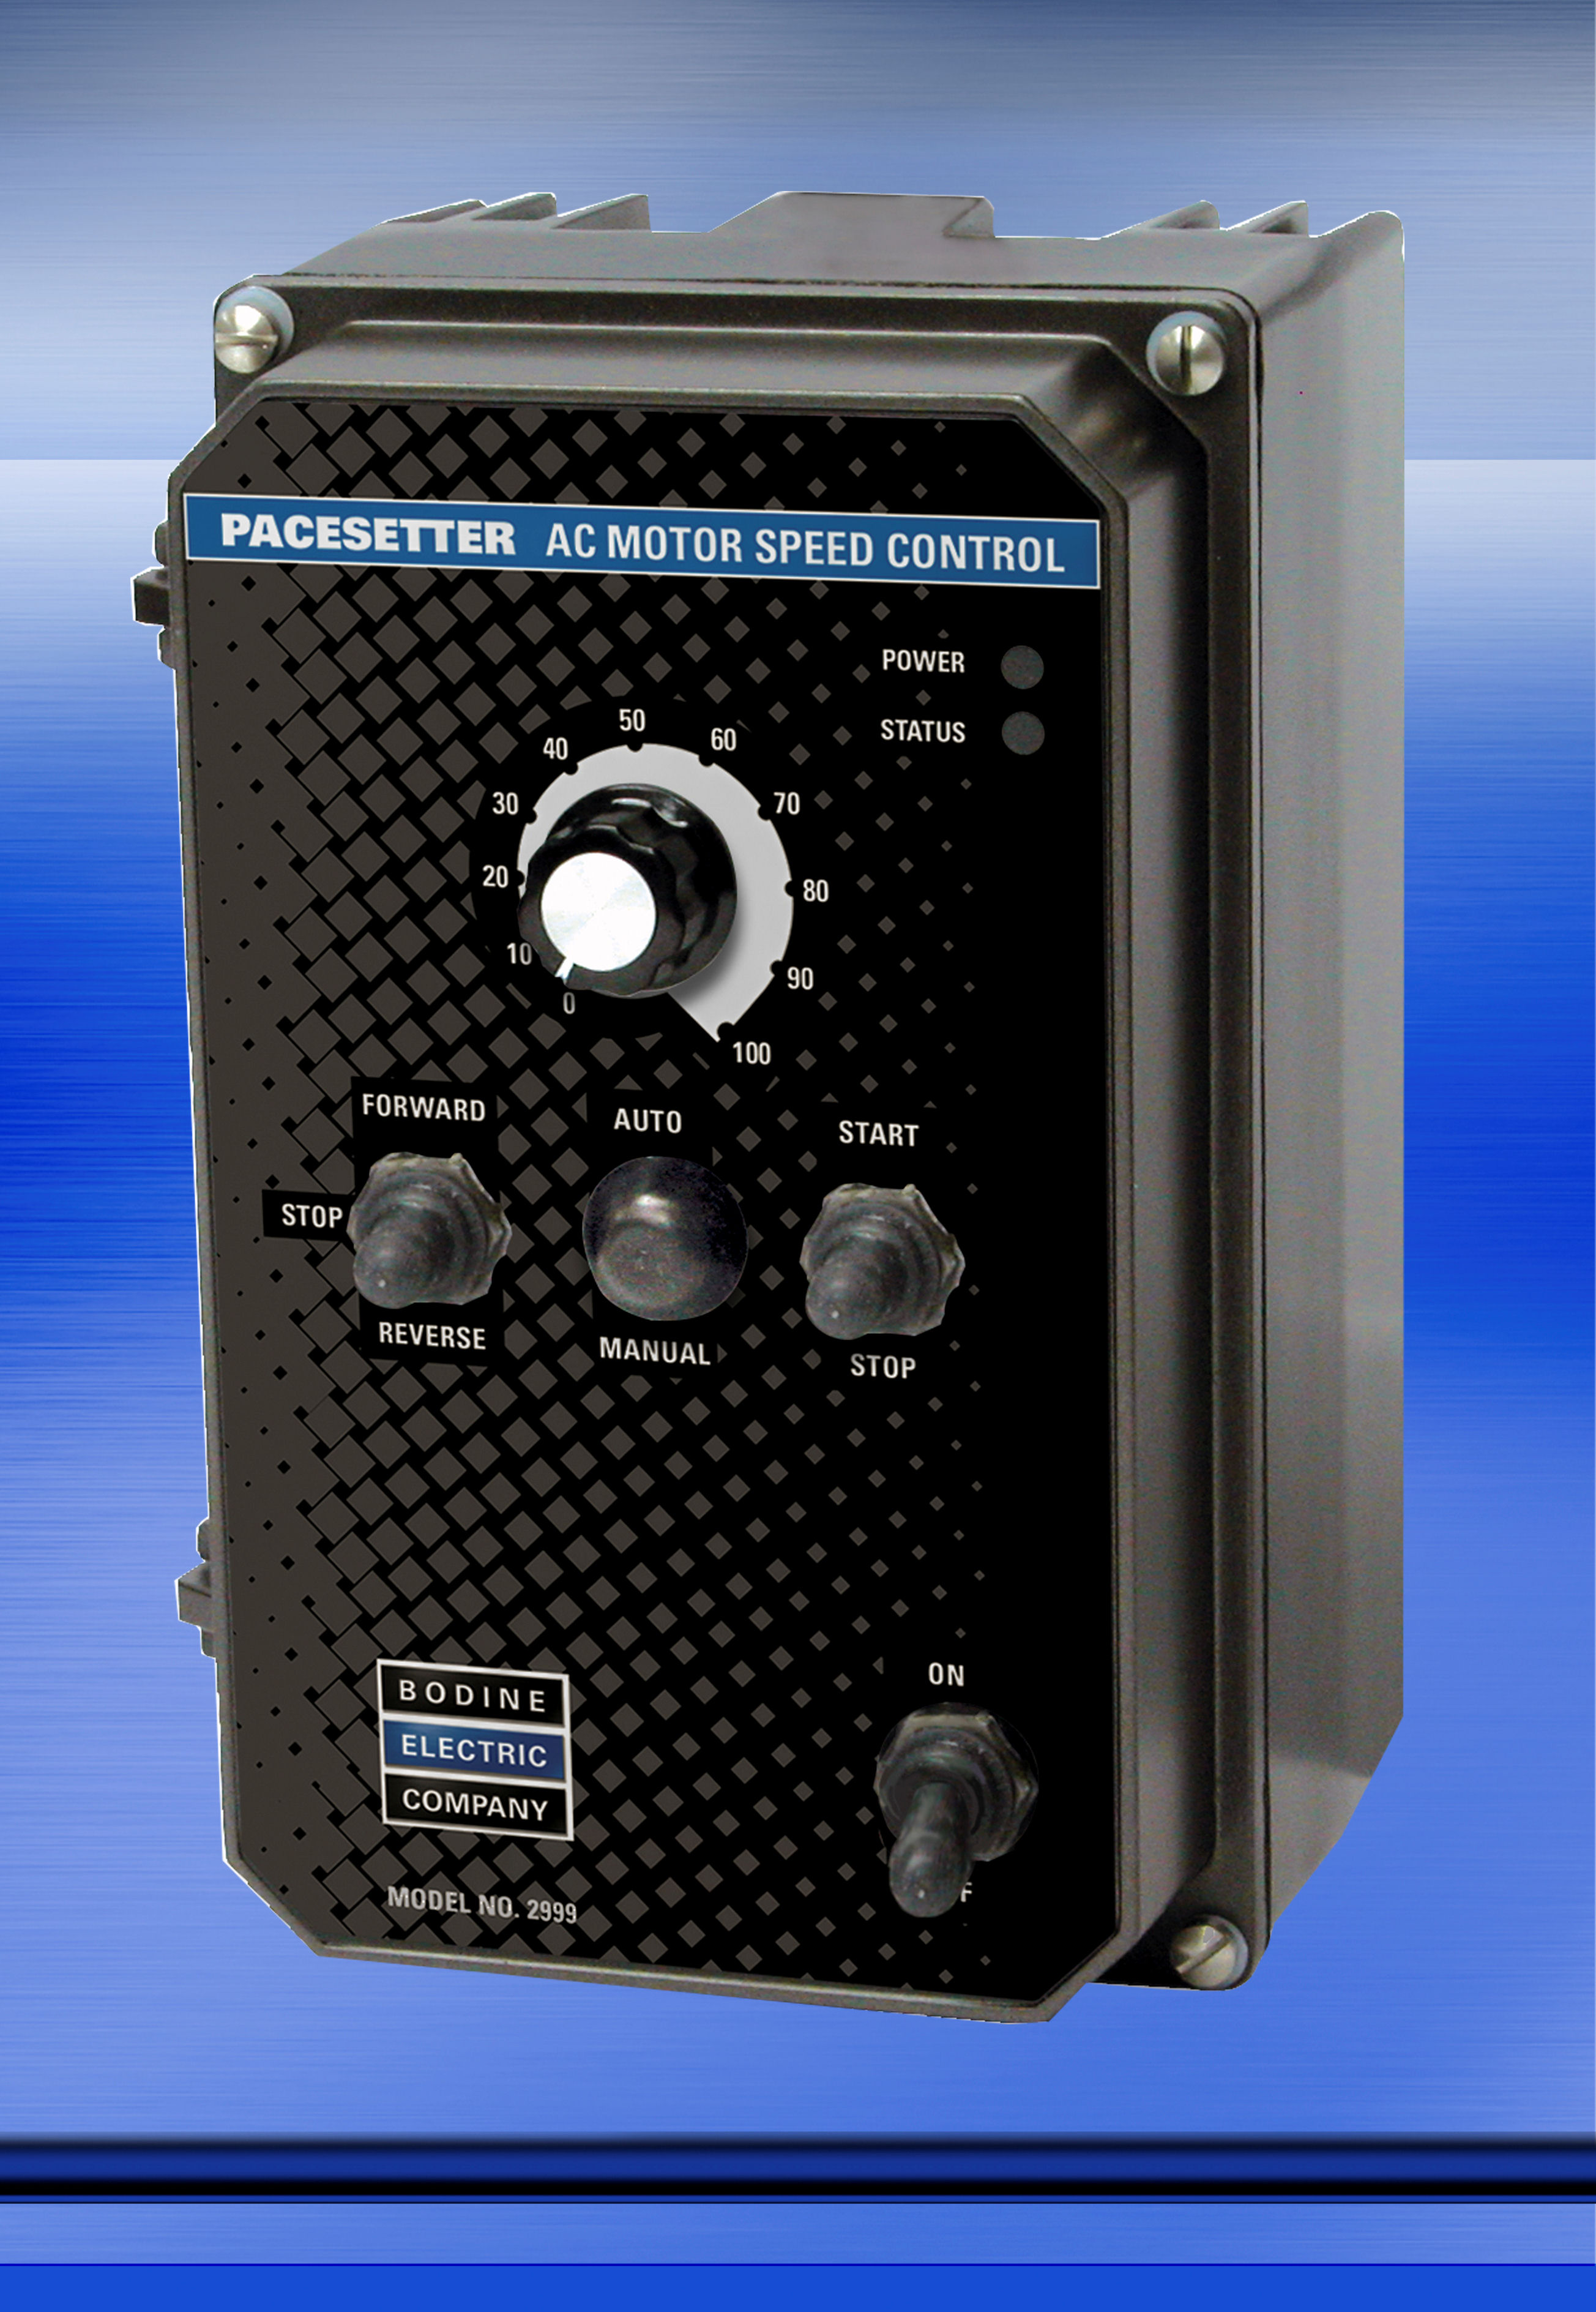 Model 2999 New Rugged AC Motor Speed Control